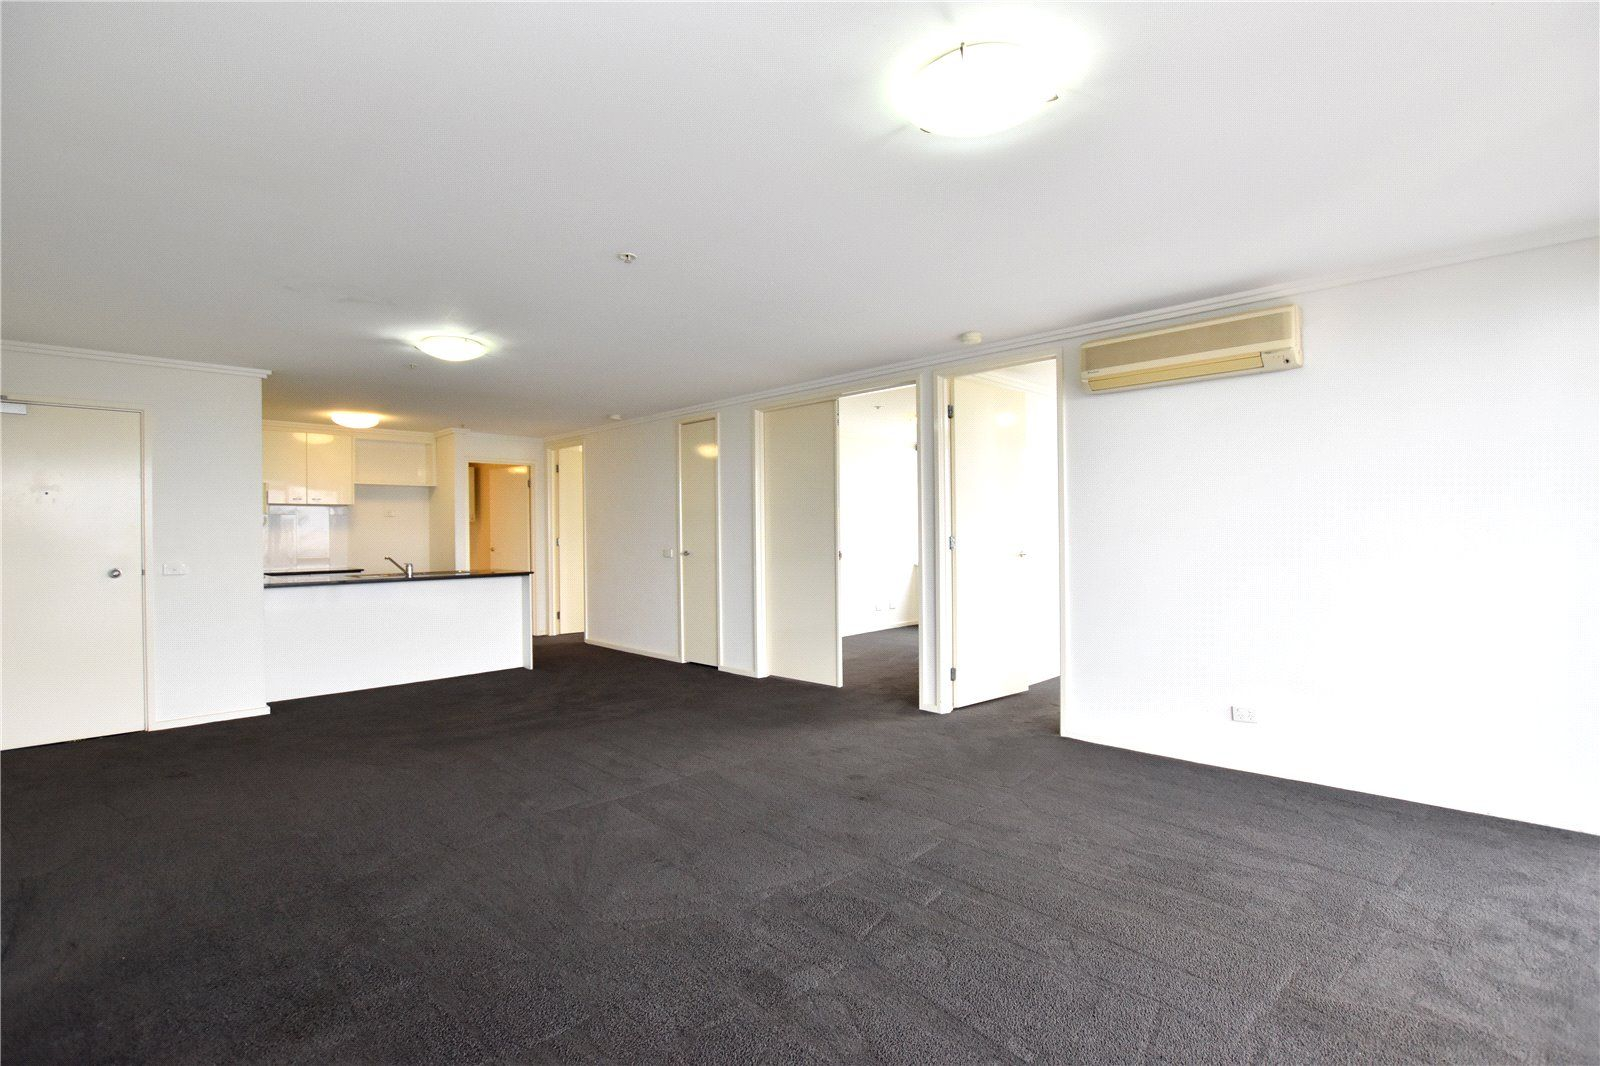 Southpoint: 23rd Floor - Sensational Location, Spacious Apartment, Superb Amenities!